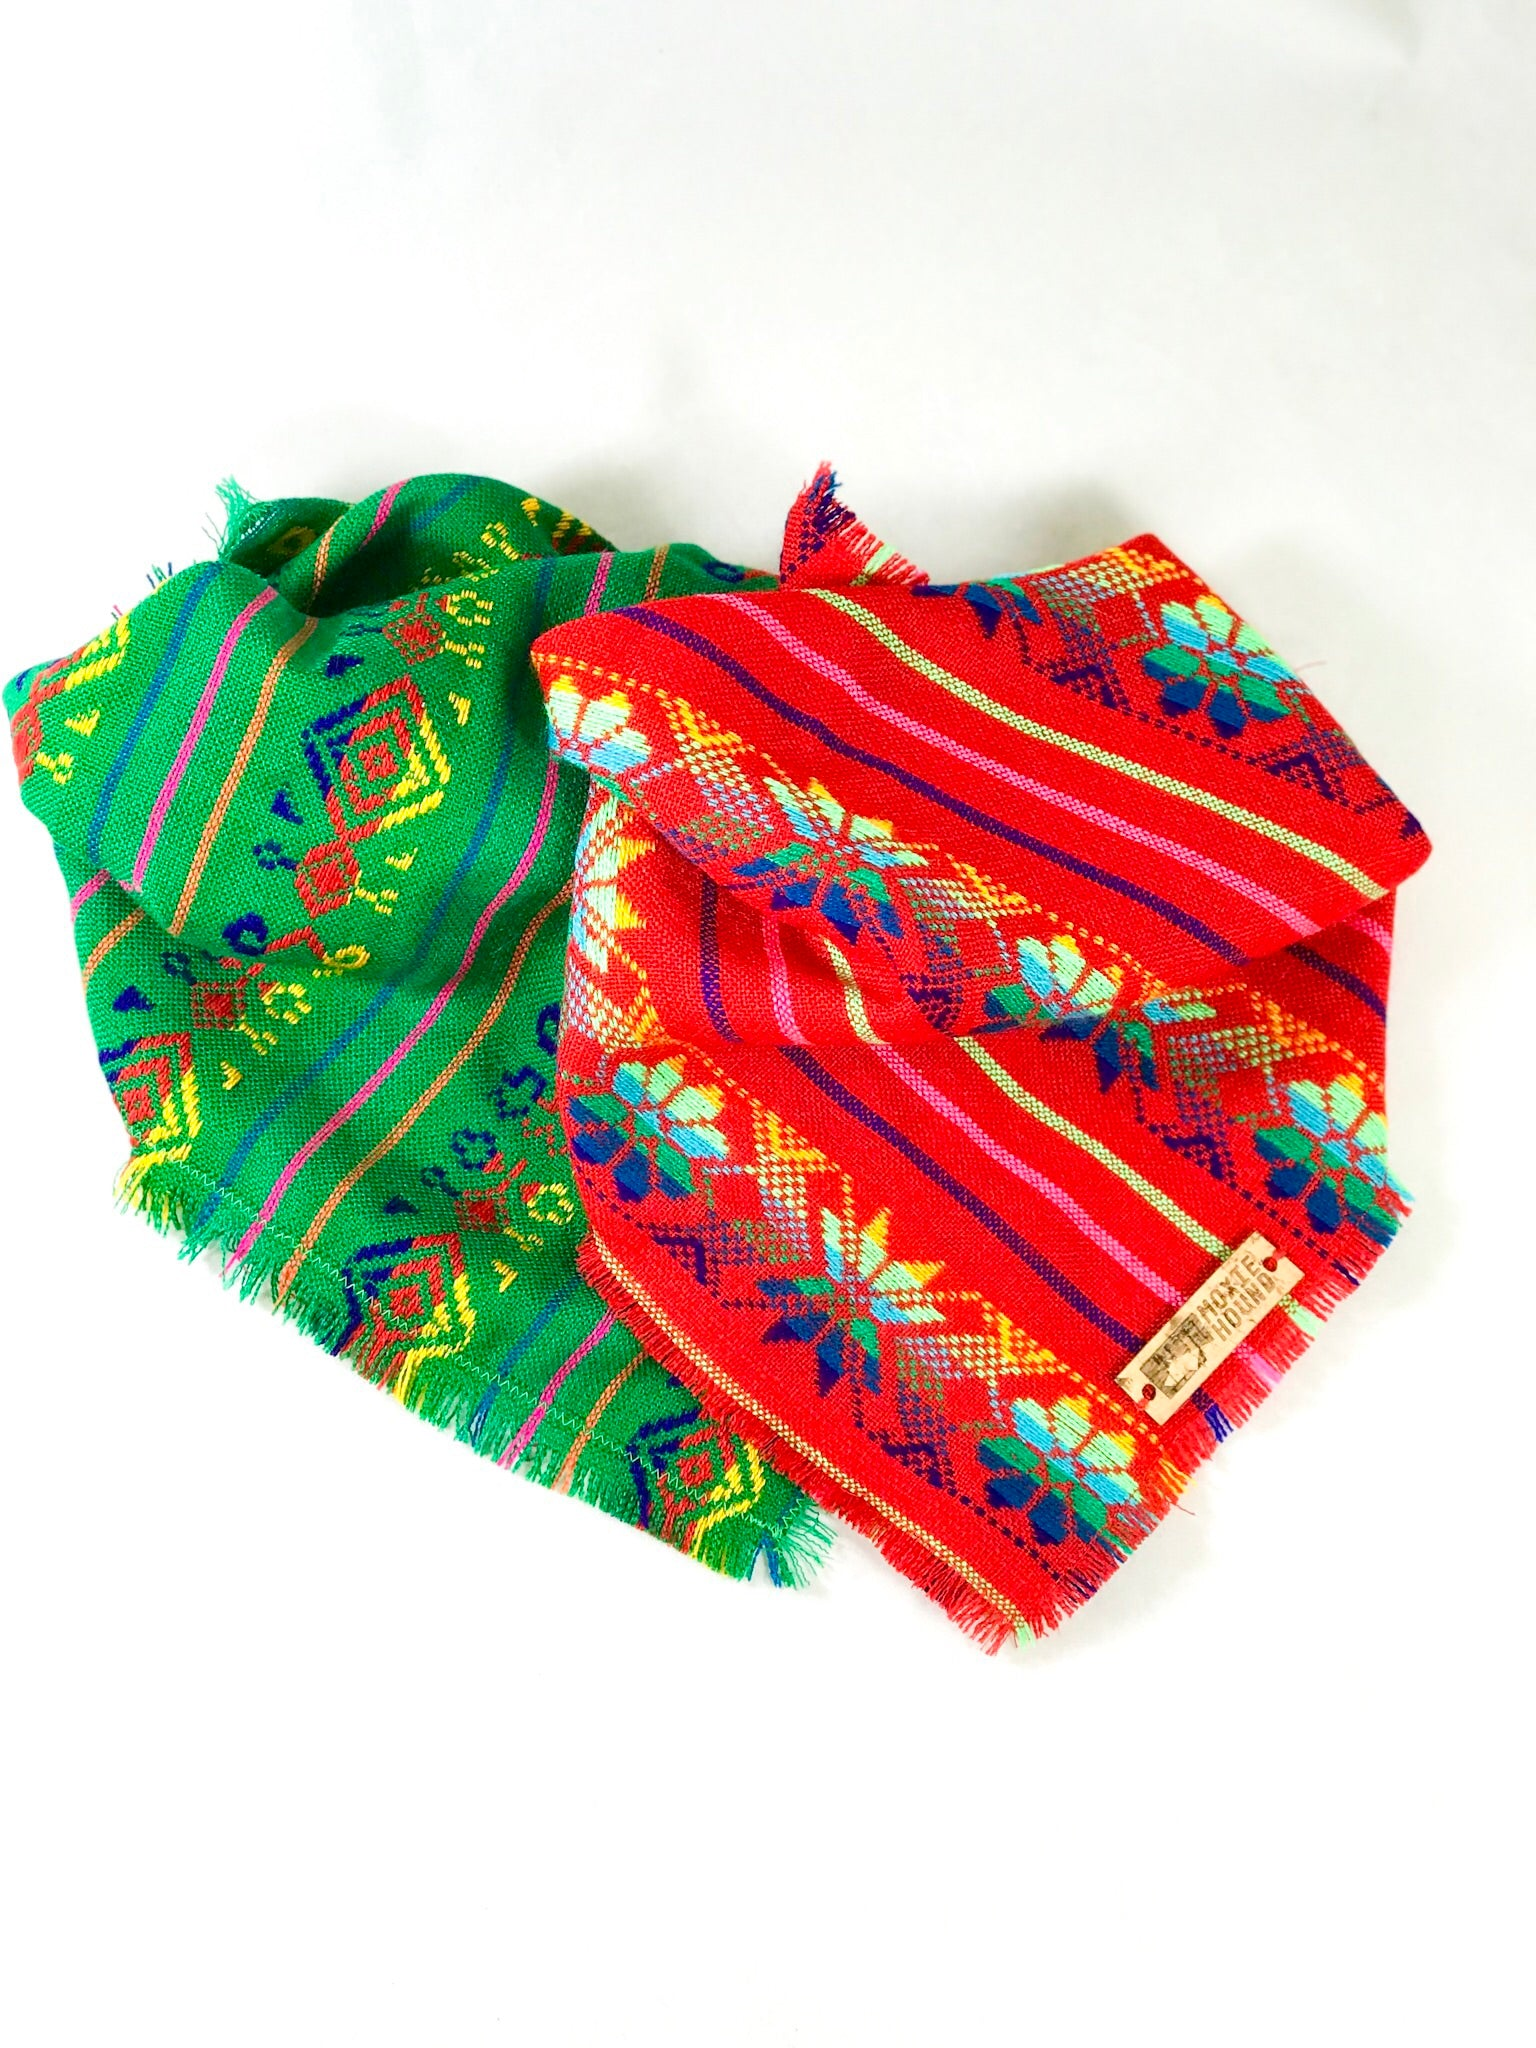 Green Viva Bandana - The Moxie Collection